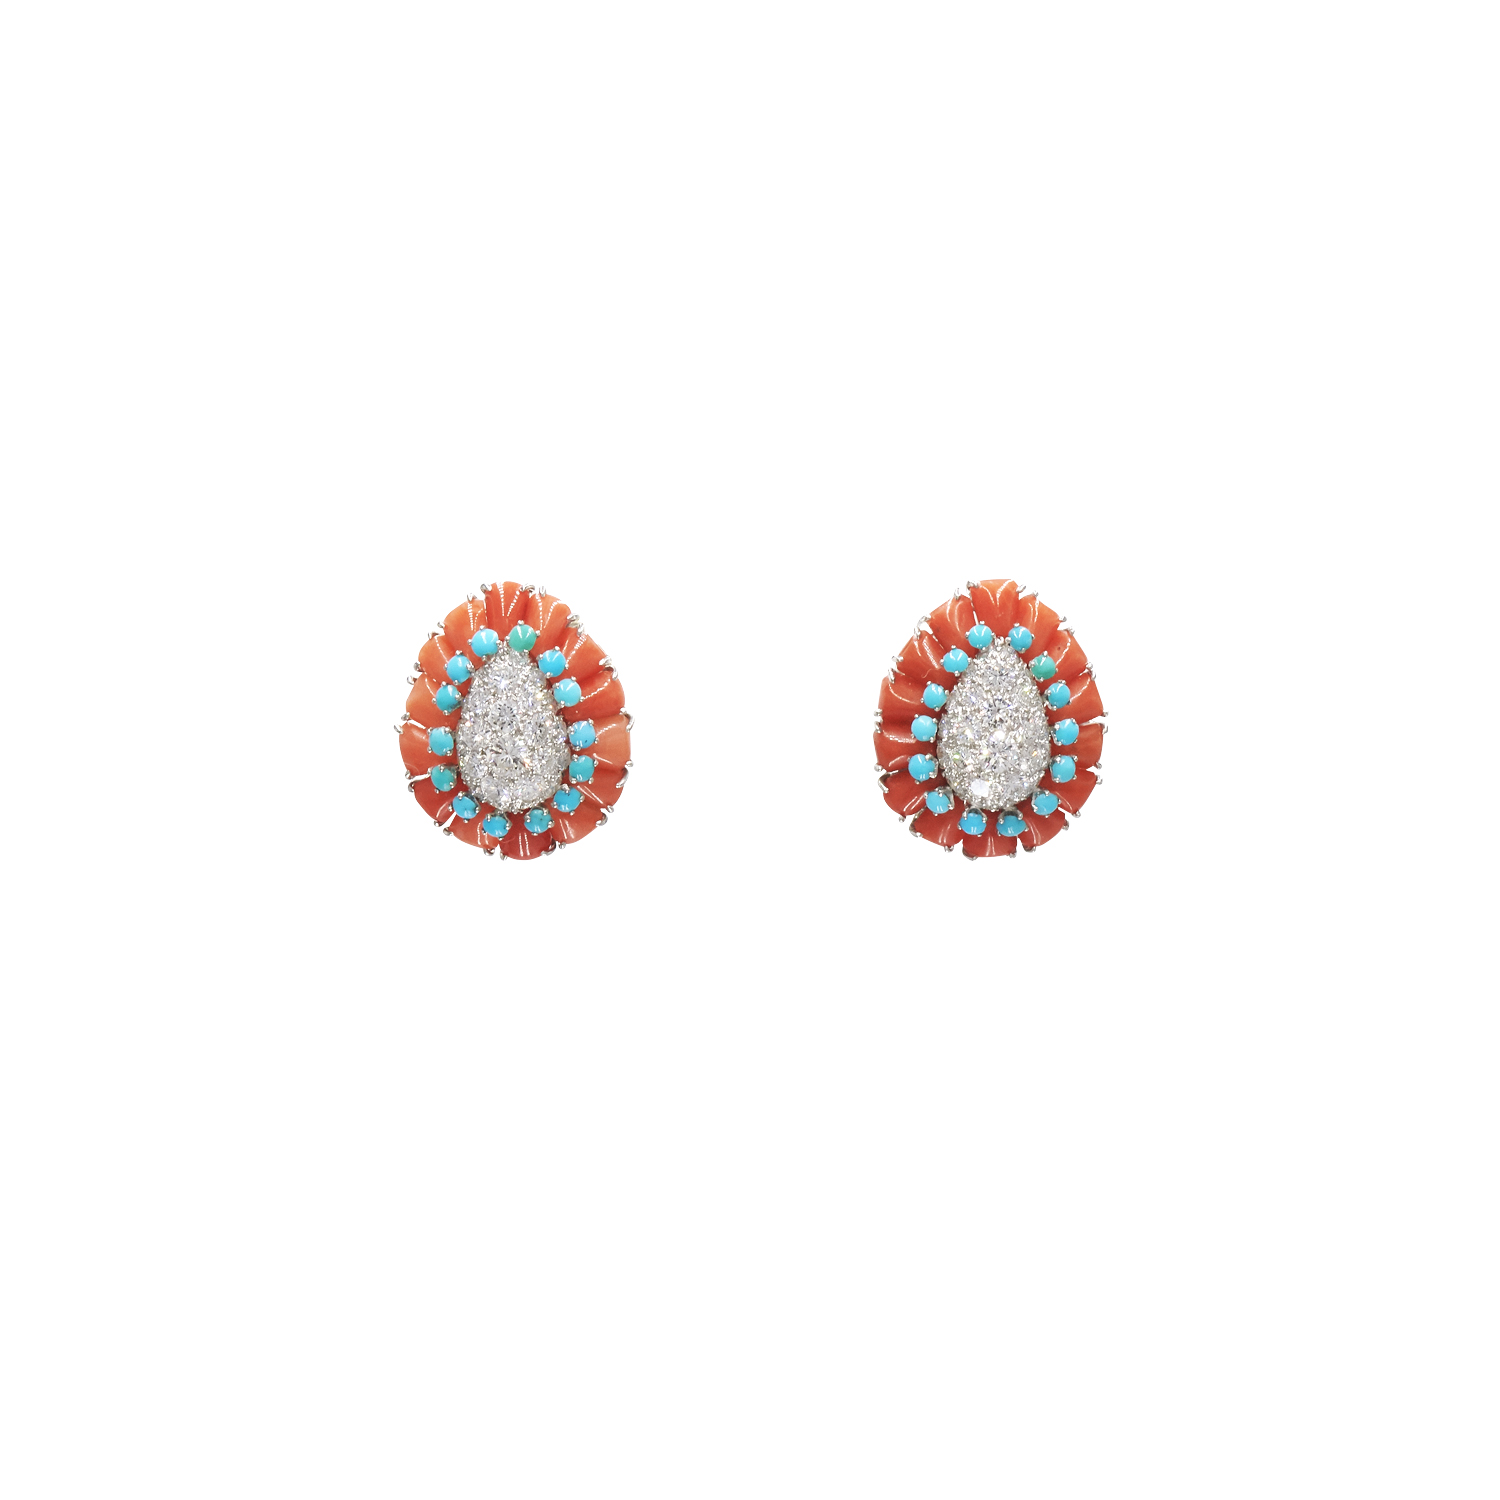 Coral, Turquoise and Diamond Paisley Earrings by Van Cleef & Arpels NY Style E-41644-FL-0-0